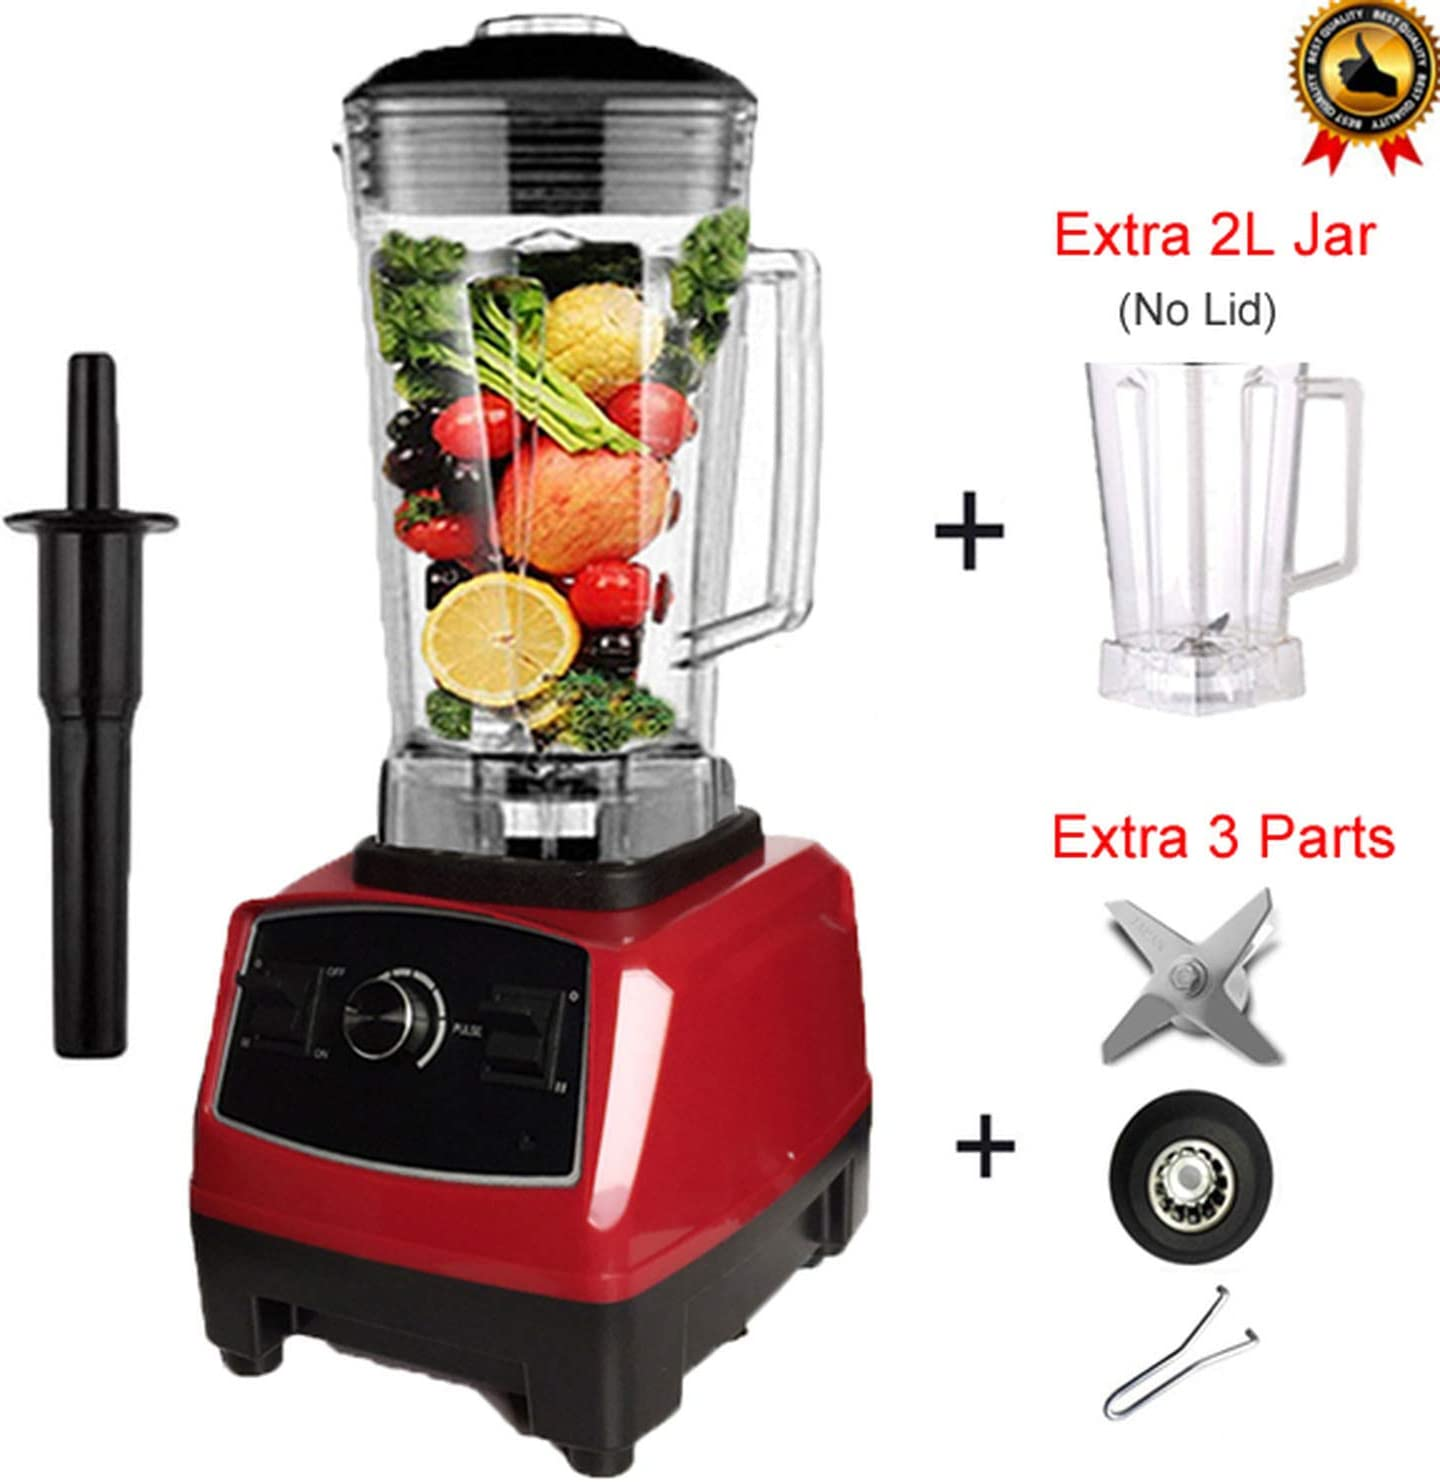 BPA free 2200W Heavy Duty Commercial Blender Professional Blender Mixer Food Processor Japan Blade Juicer Ice Smoothie Machine,Red jar fullpart